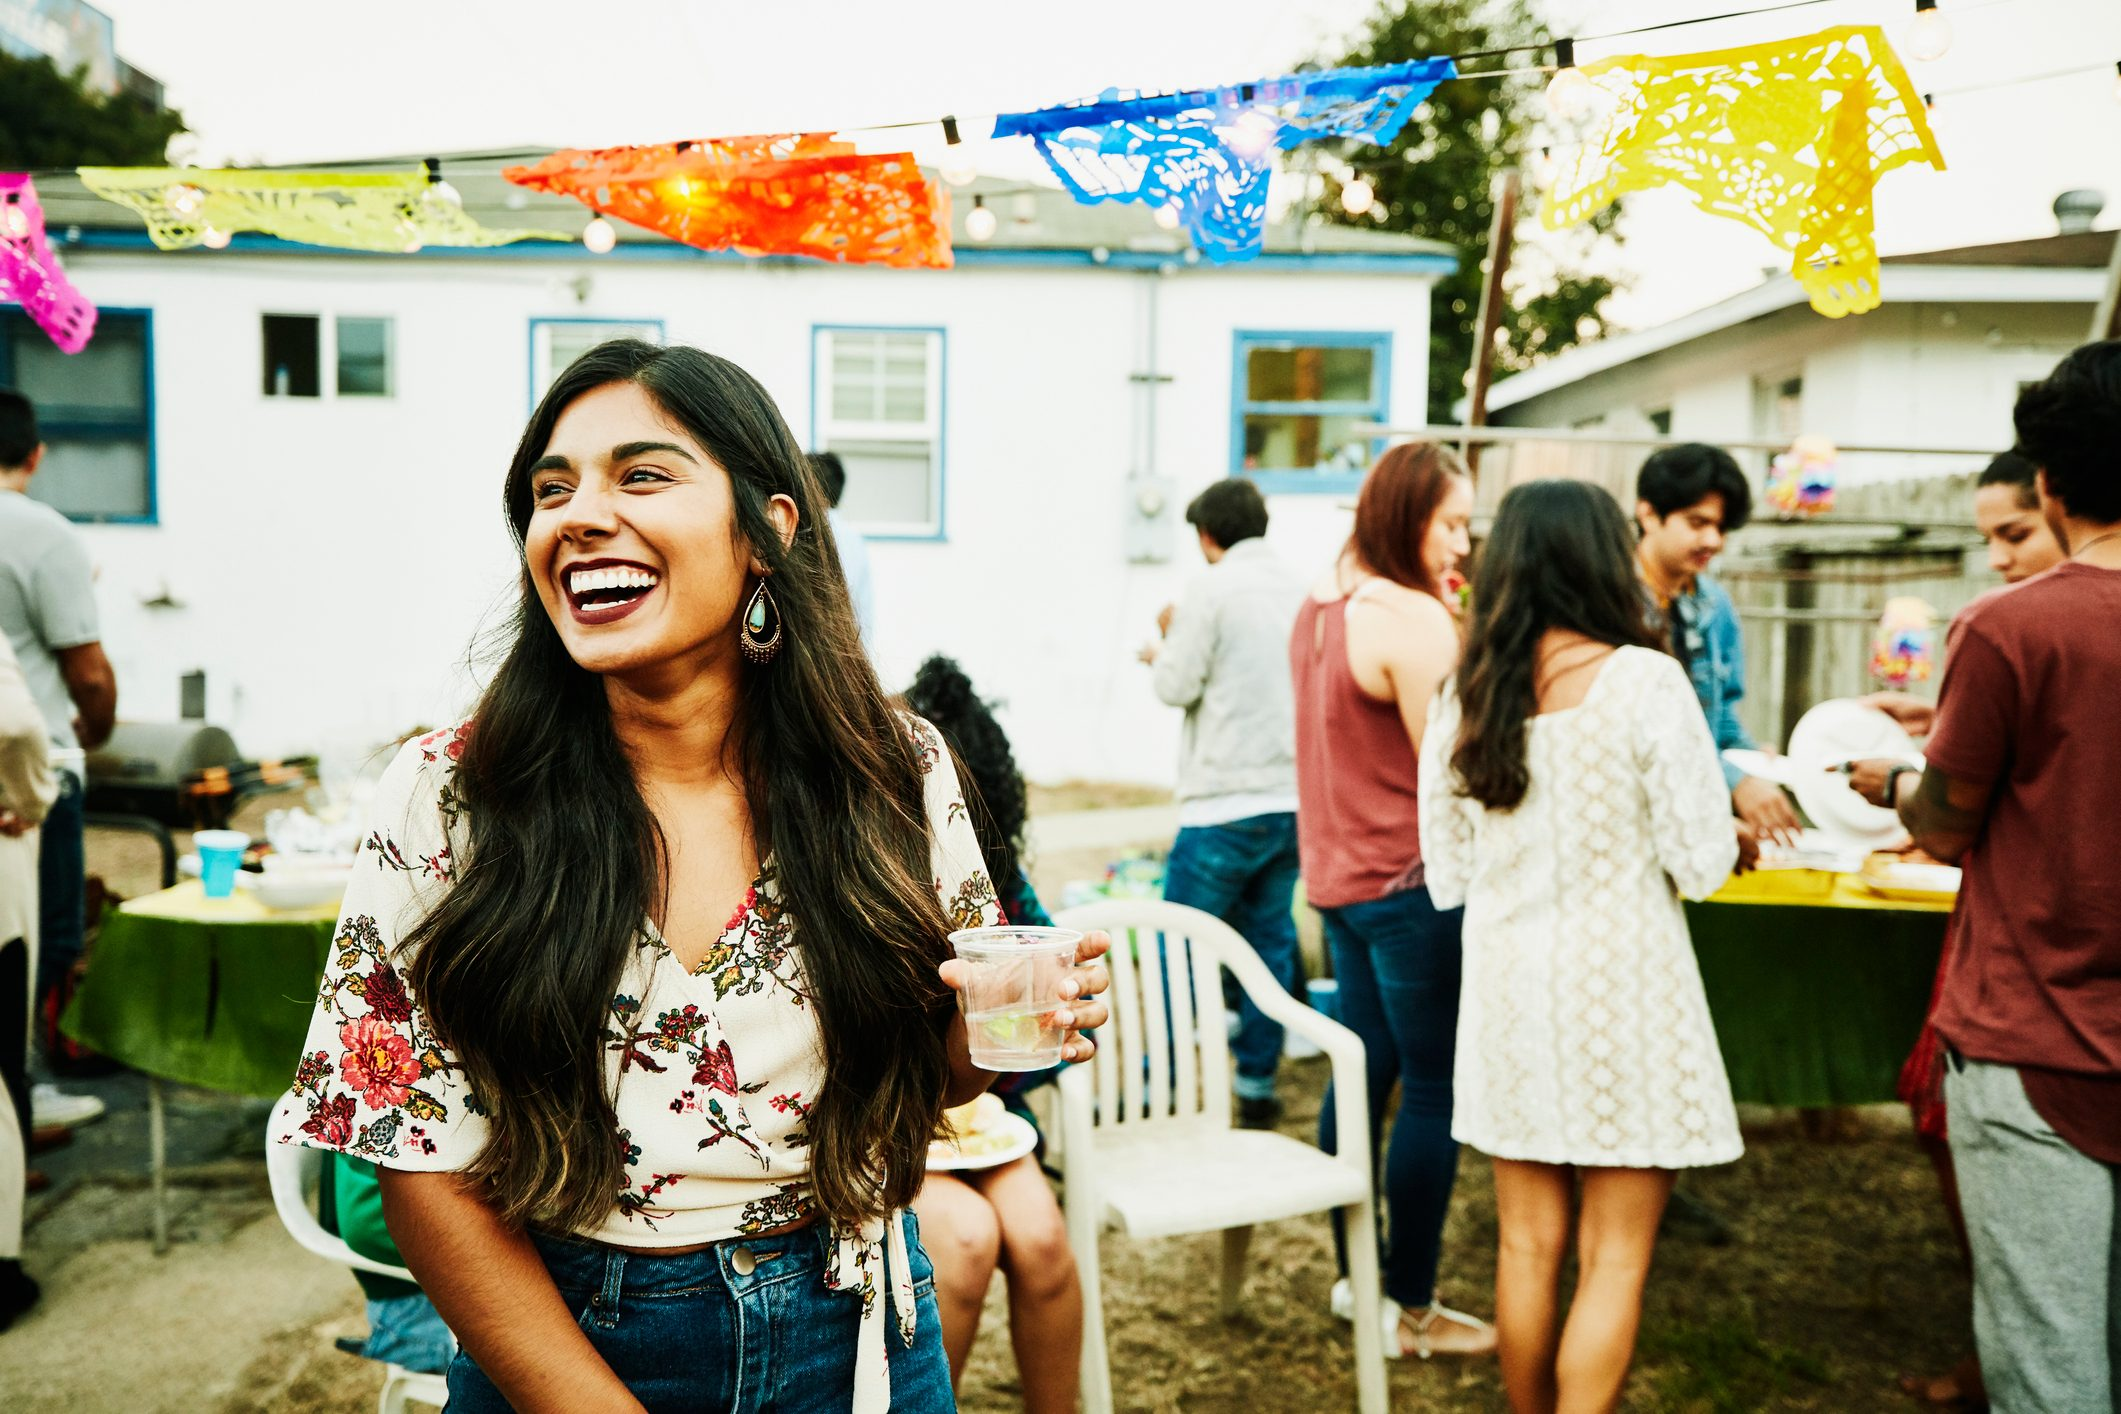 Laughing woman hanging out with friends during backyard party